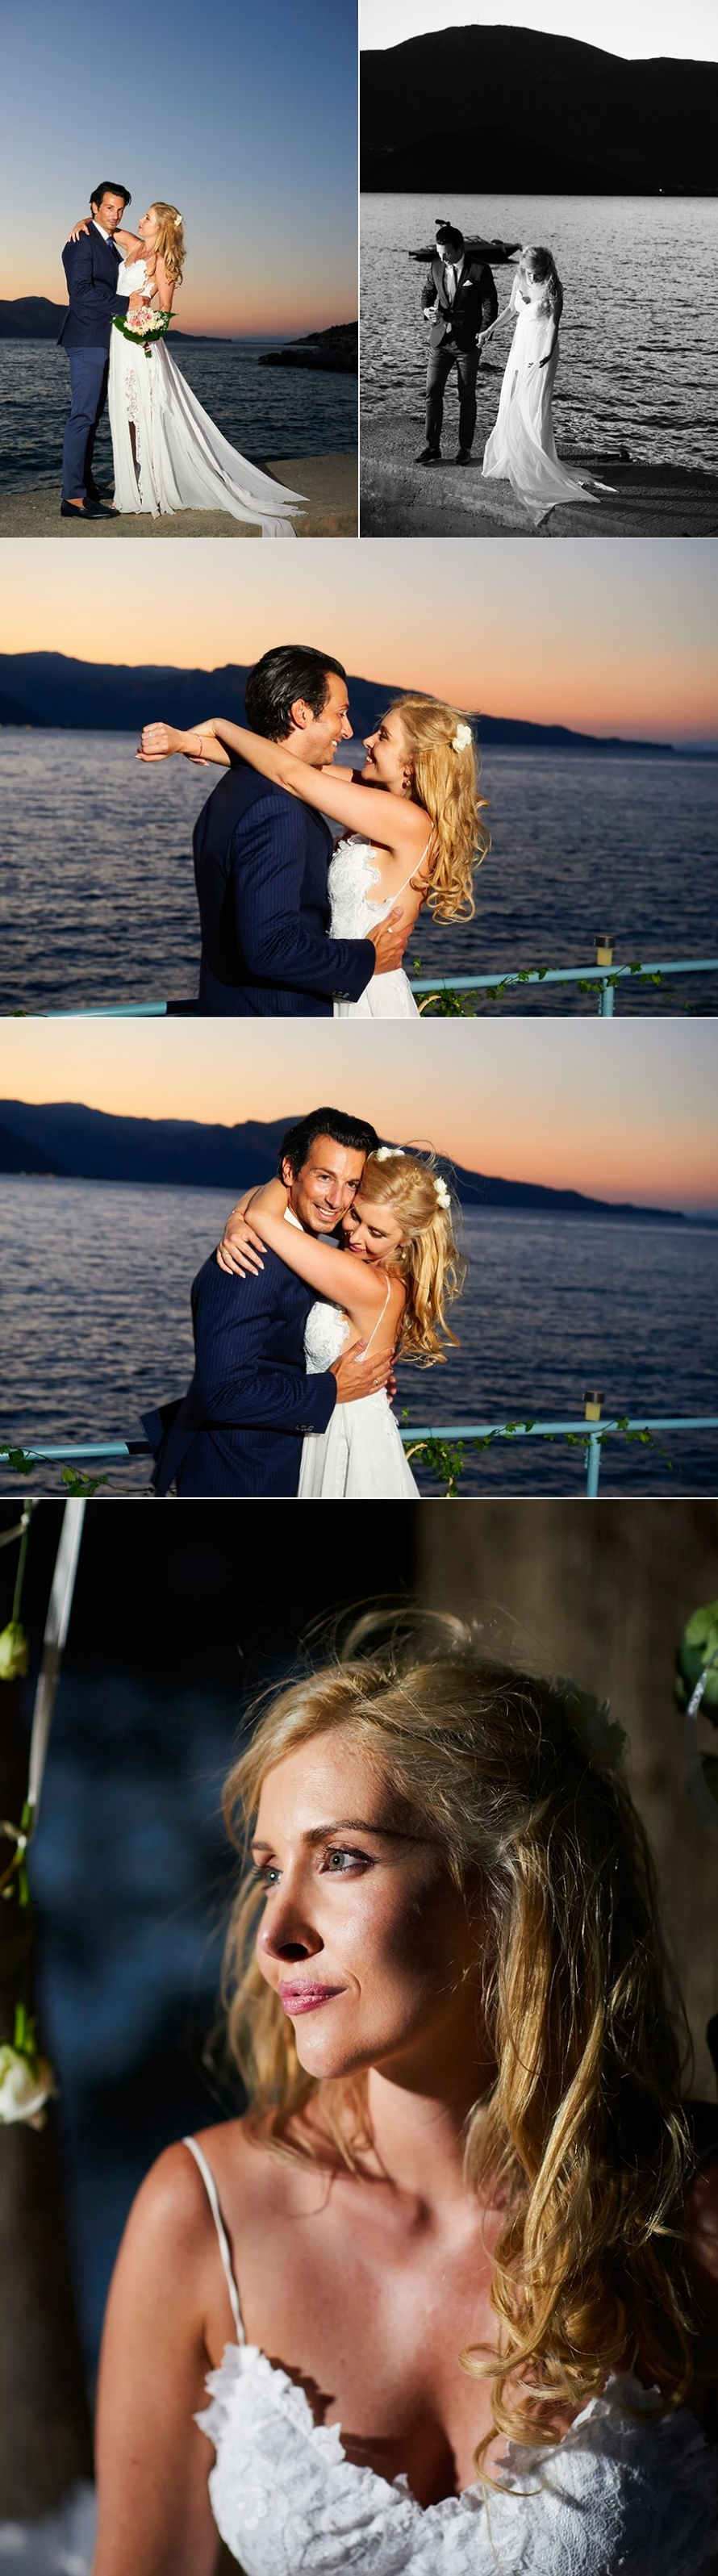 giannis-stella-wedding-photo-12